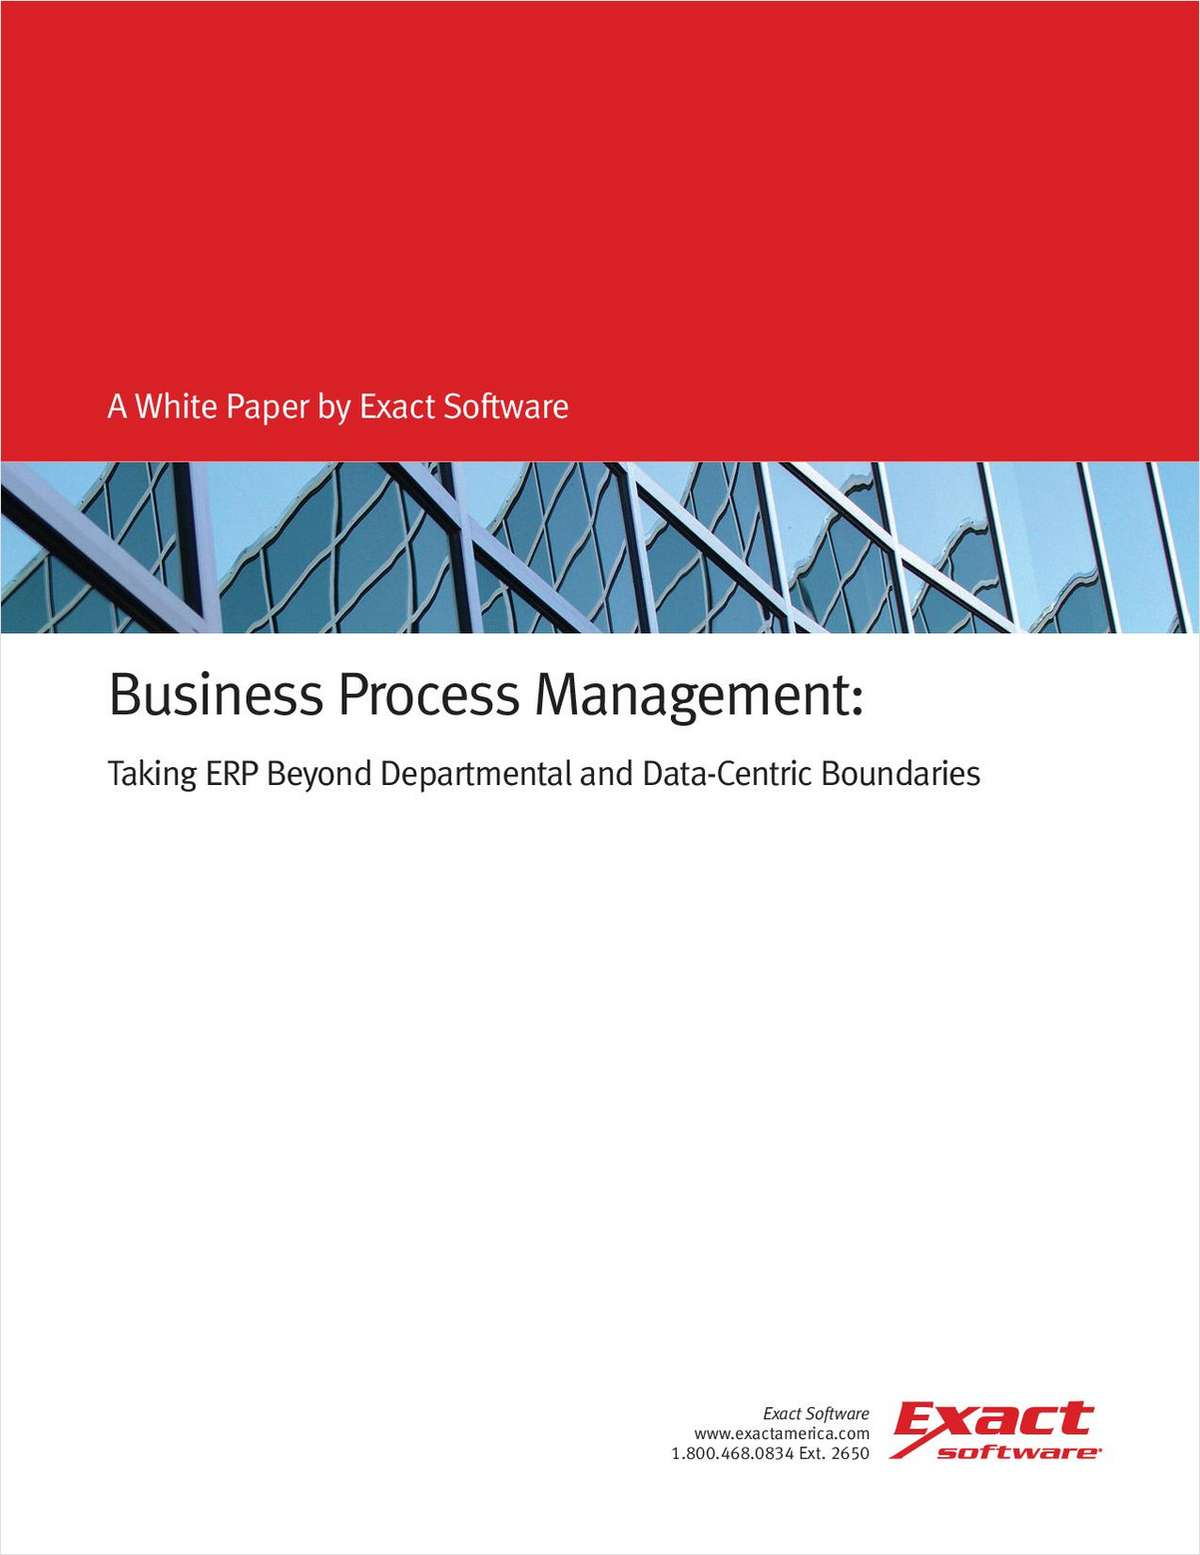 Business Process Management: Taking ERP Beyond Departmental and Data-Centric Boundaries